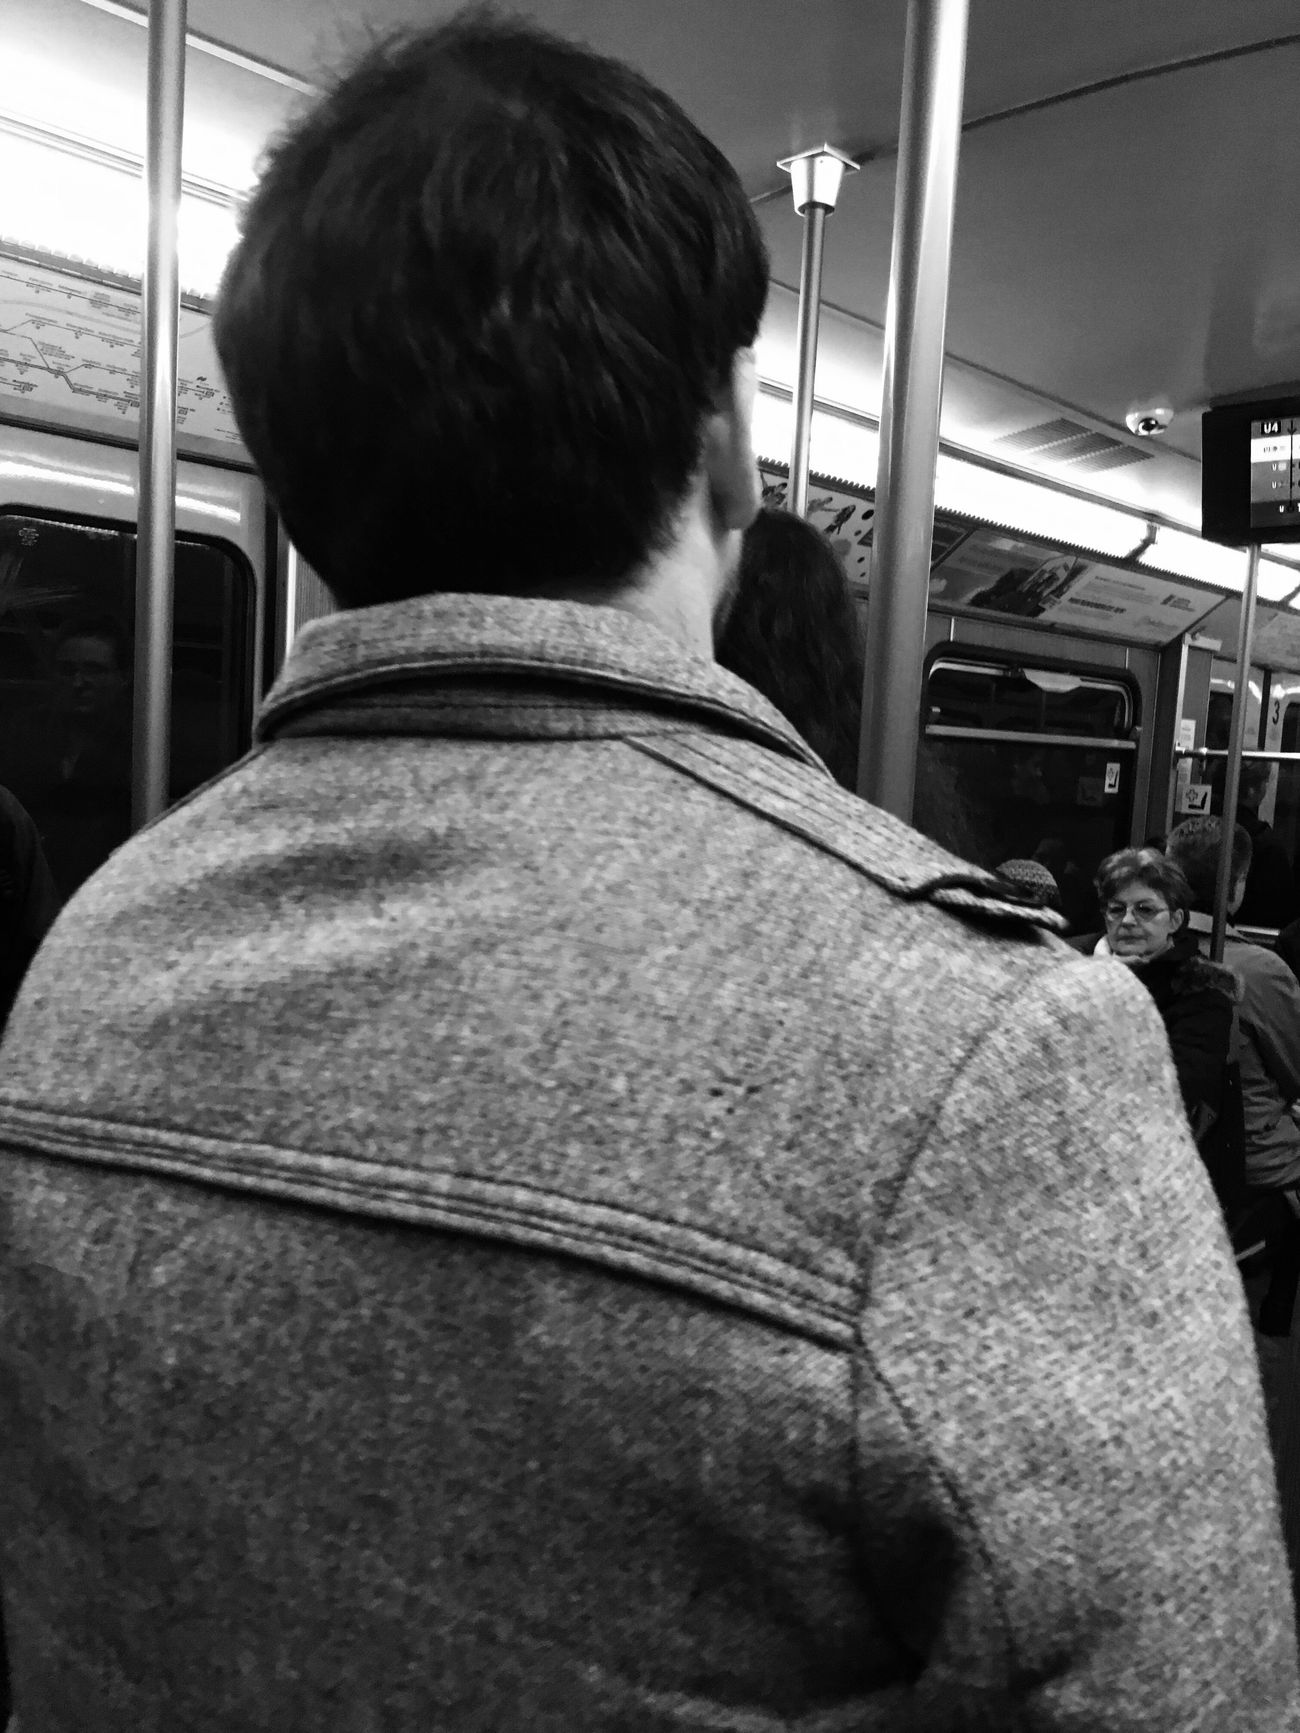 Black And White Rear View Public Transportation Vehicle Interior Mode Of Transport Subway Train Train - Vehicle One Person Commuter Rail Transportation Passenger Passenger Train Indoors  Real People Commuter Train One Man Only Men Train Interior Only Men Adults Only